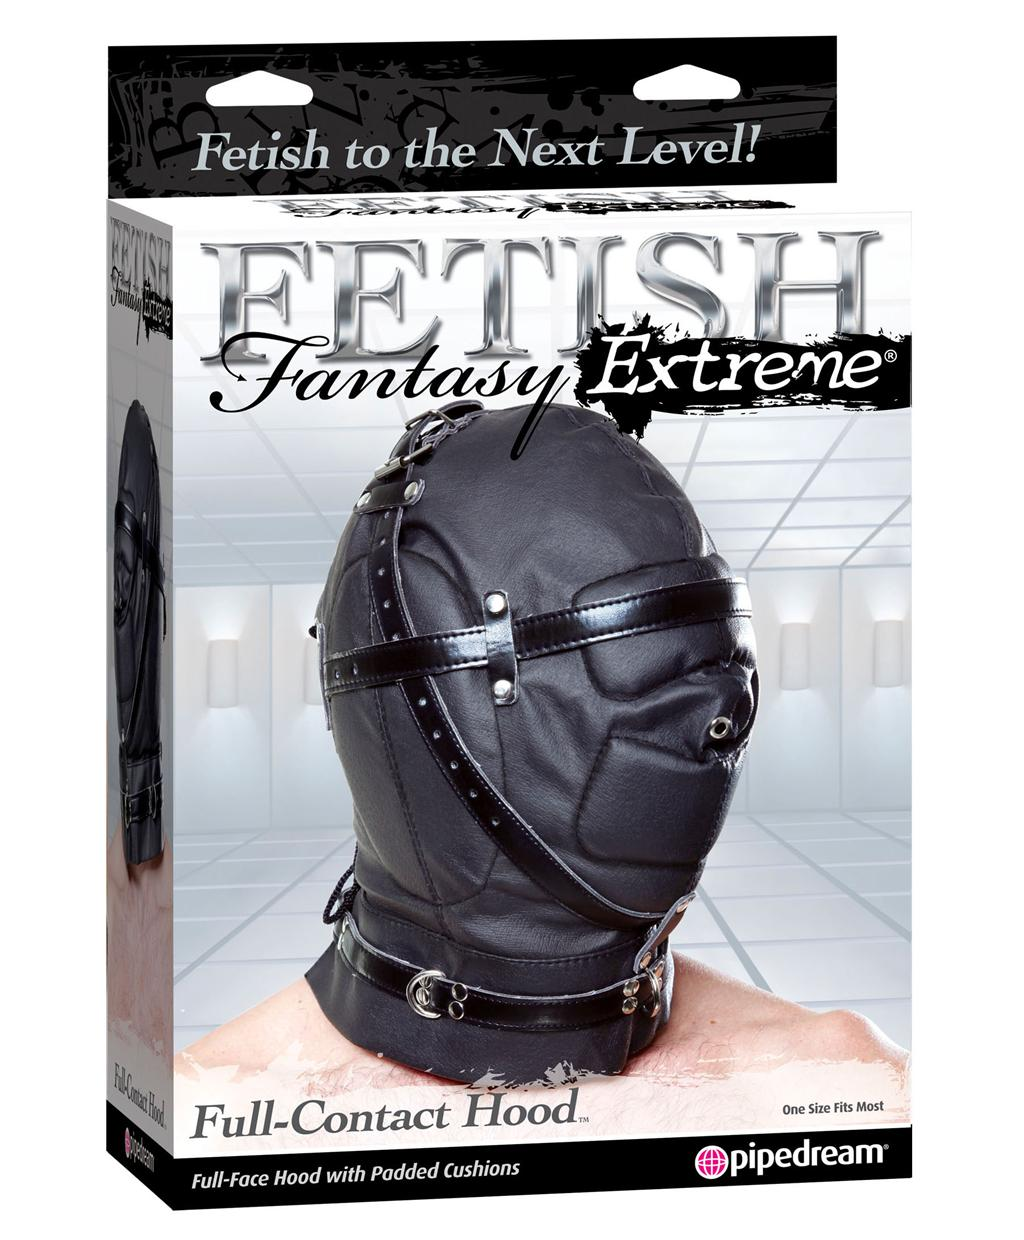 Кожаный шлем «Fetish Fantasy Extreme Full-Contact Hood»